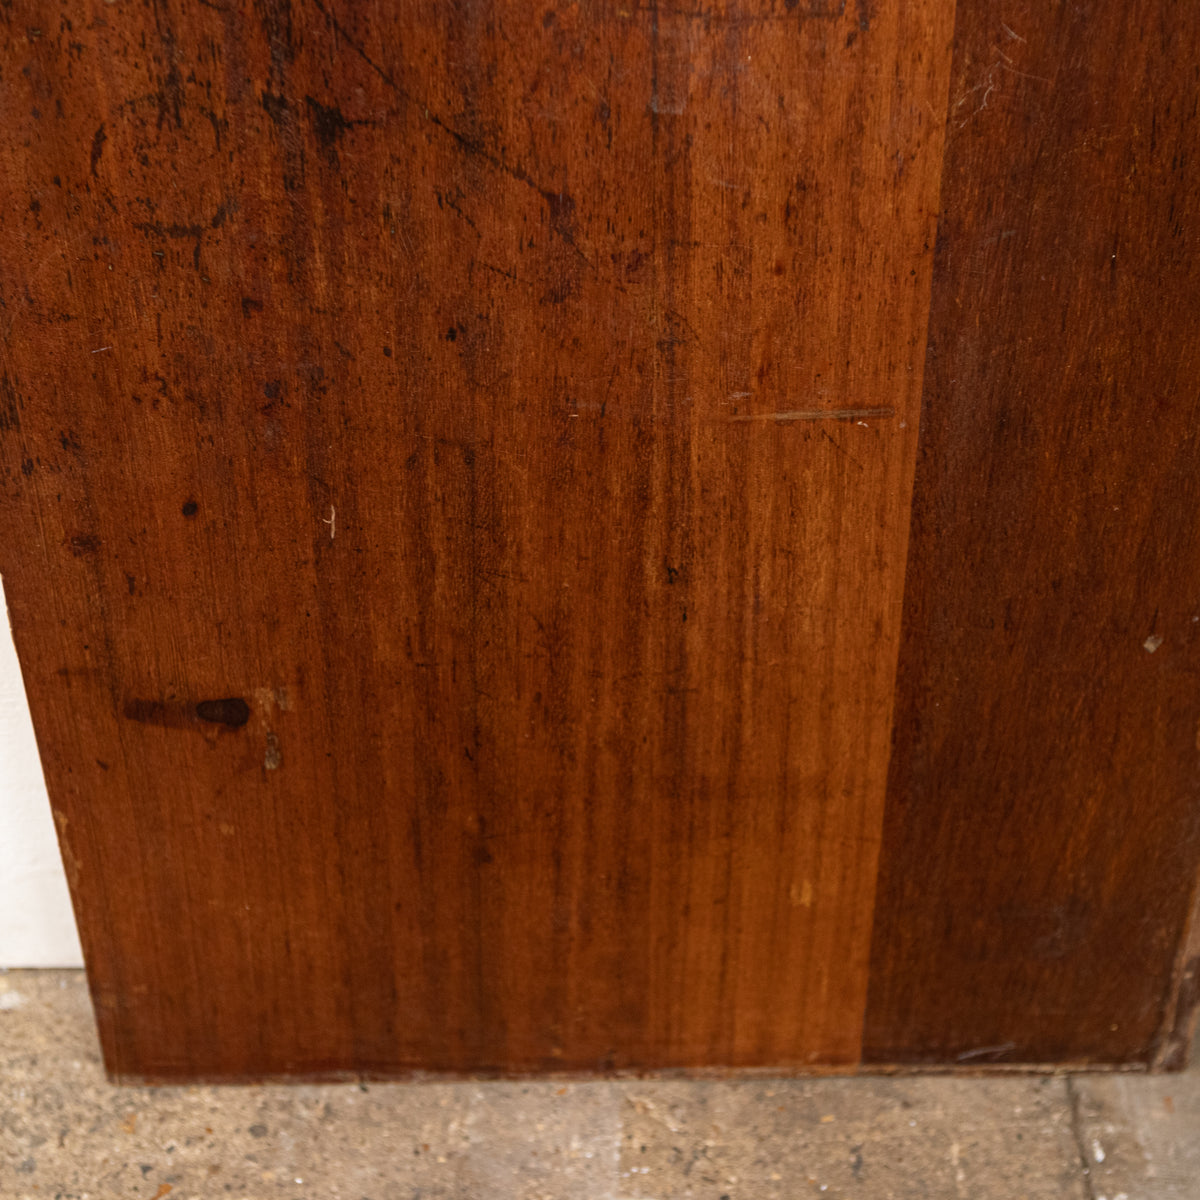 Reclaimed Teak / Iroko Worktop 174 X 58cm | The Architectural Forum